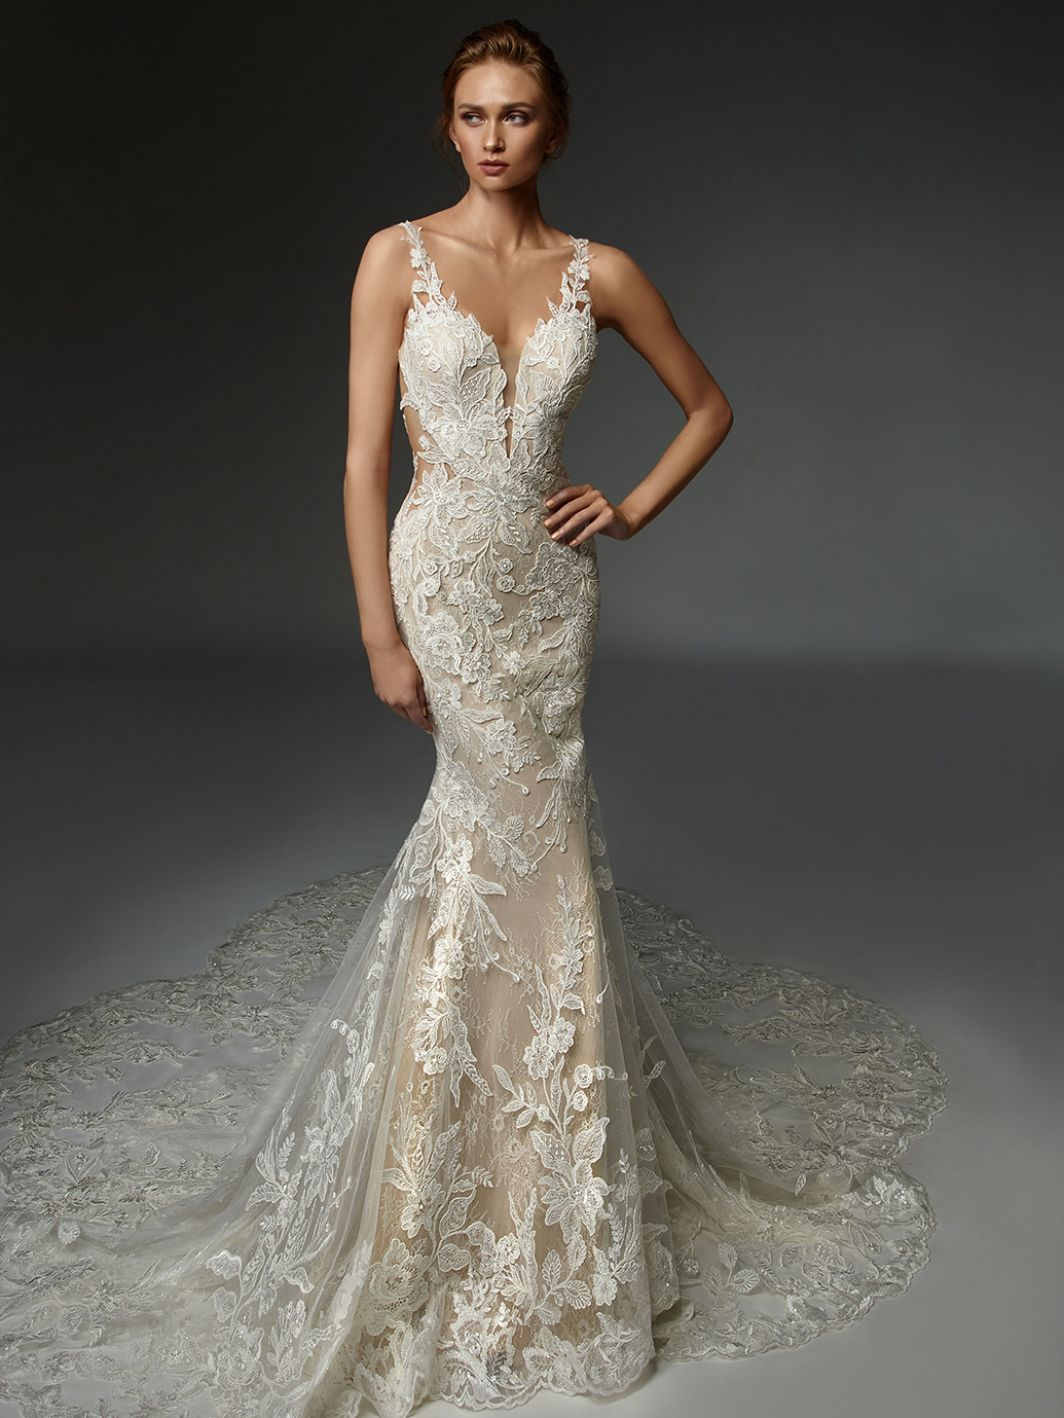 Justine - Coming Soon, Gown, Élysée by Enzoani - Eternal Bridal